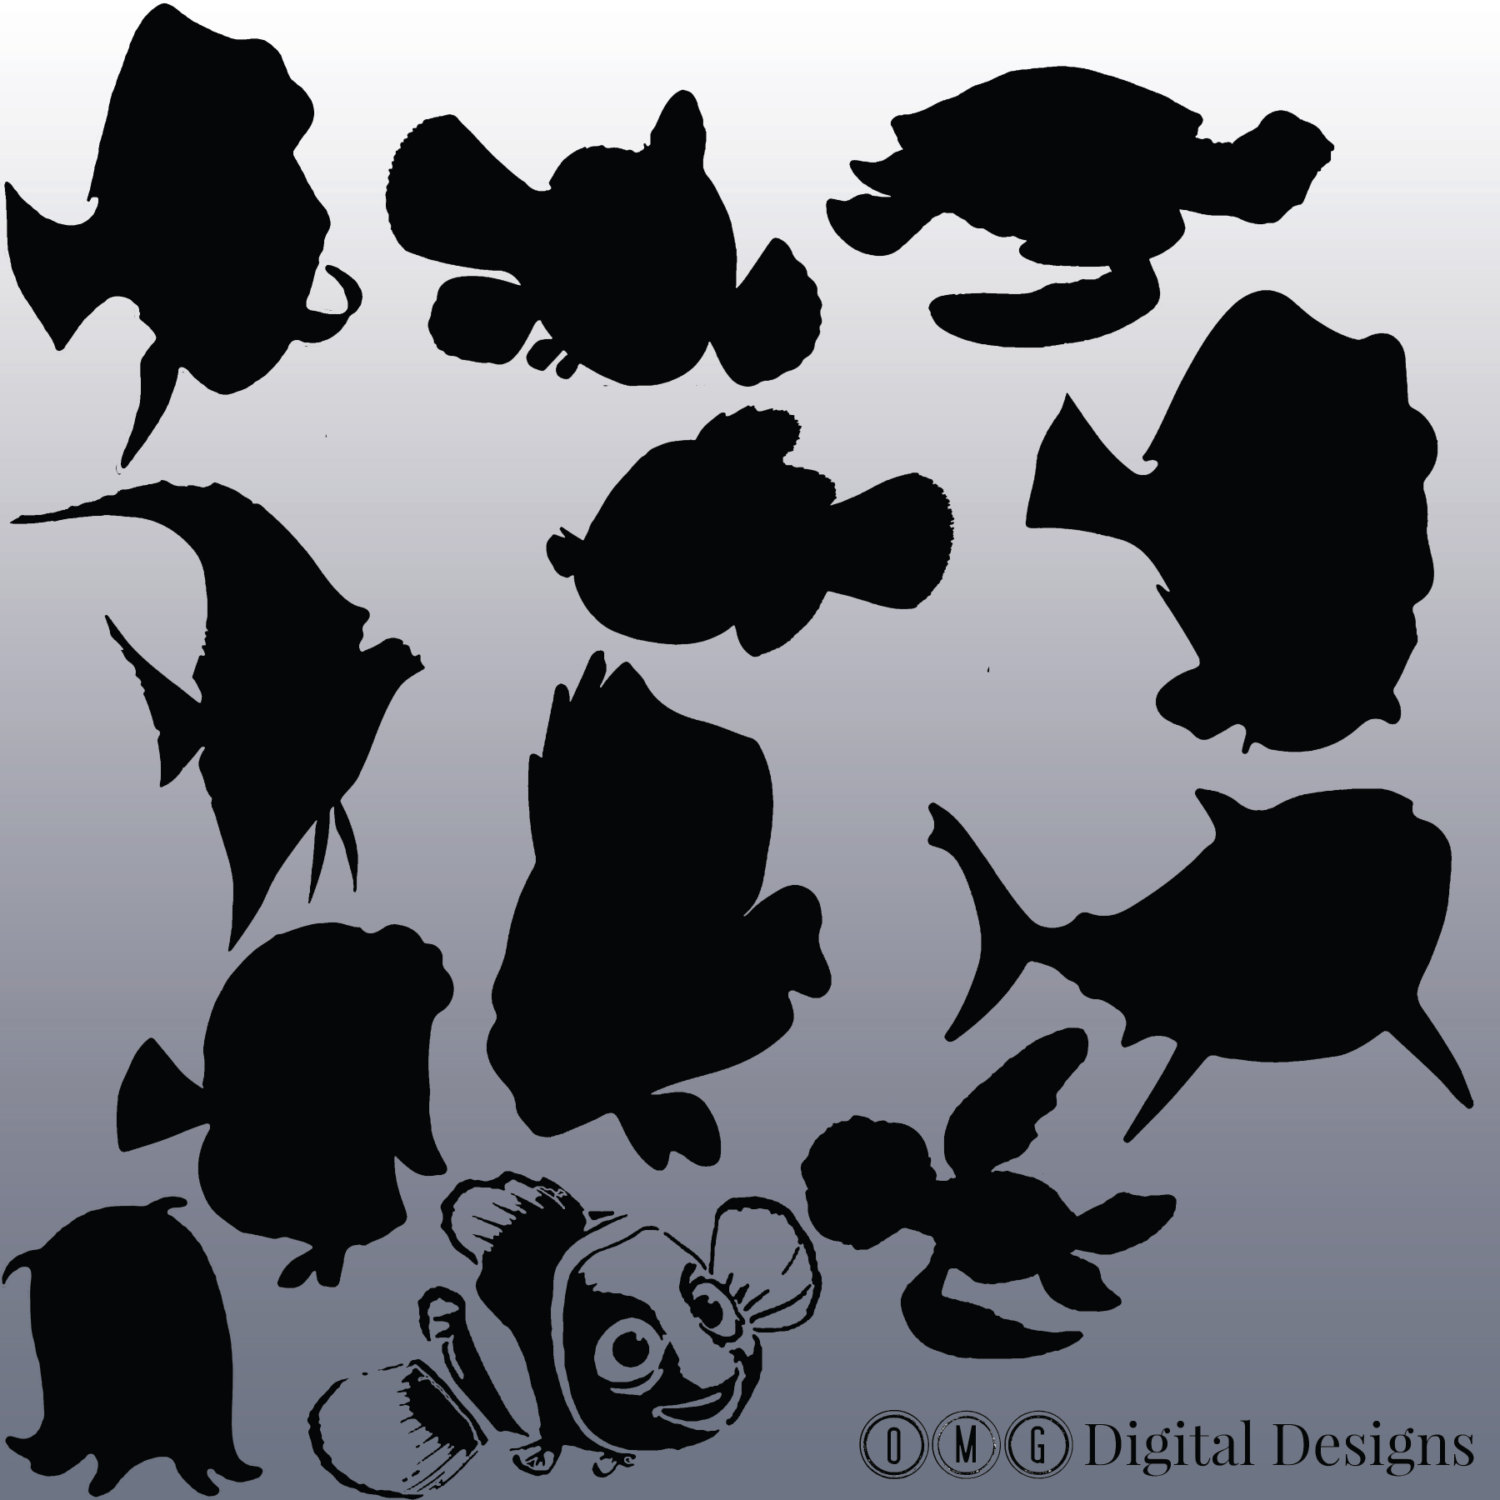 12 Finding Nemo Silhouette Clipart Images, Clipart Design Elements.